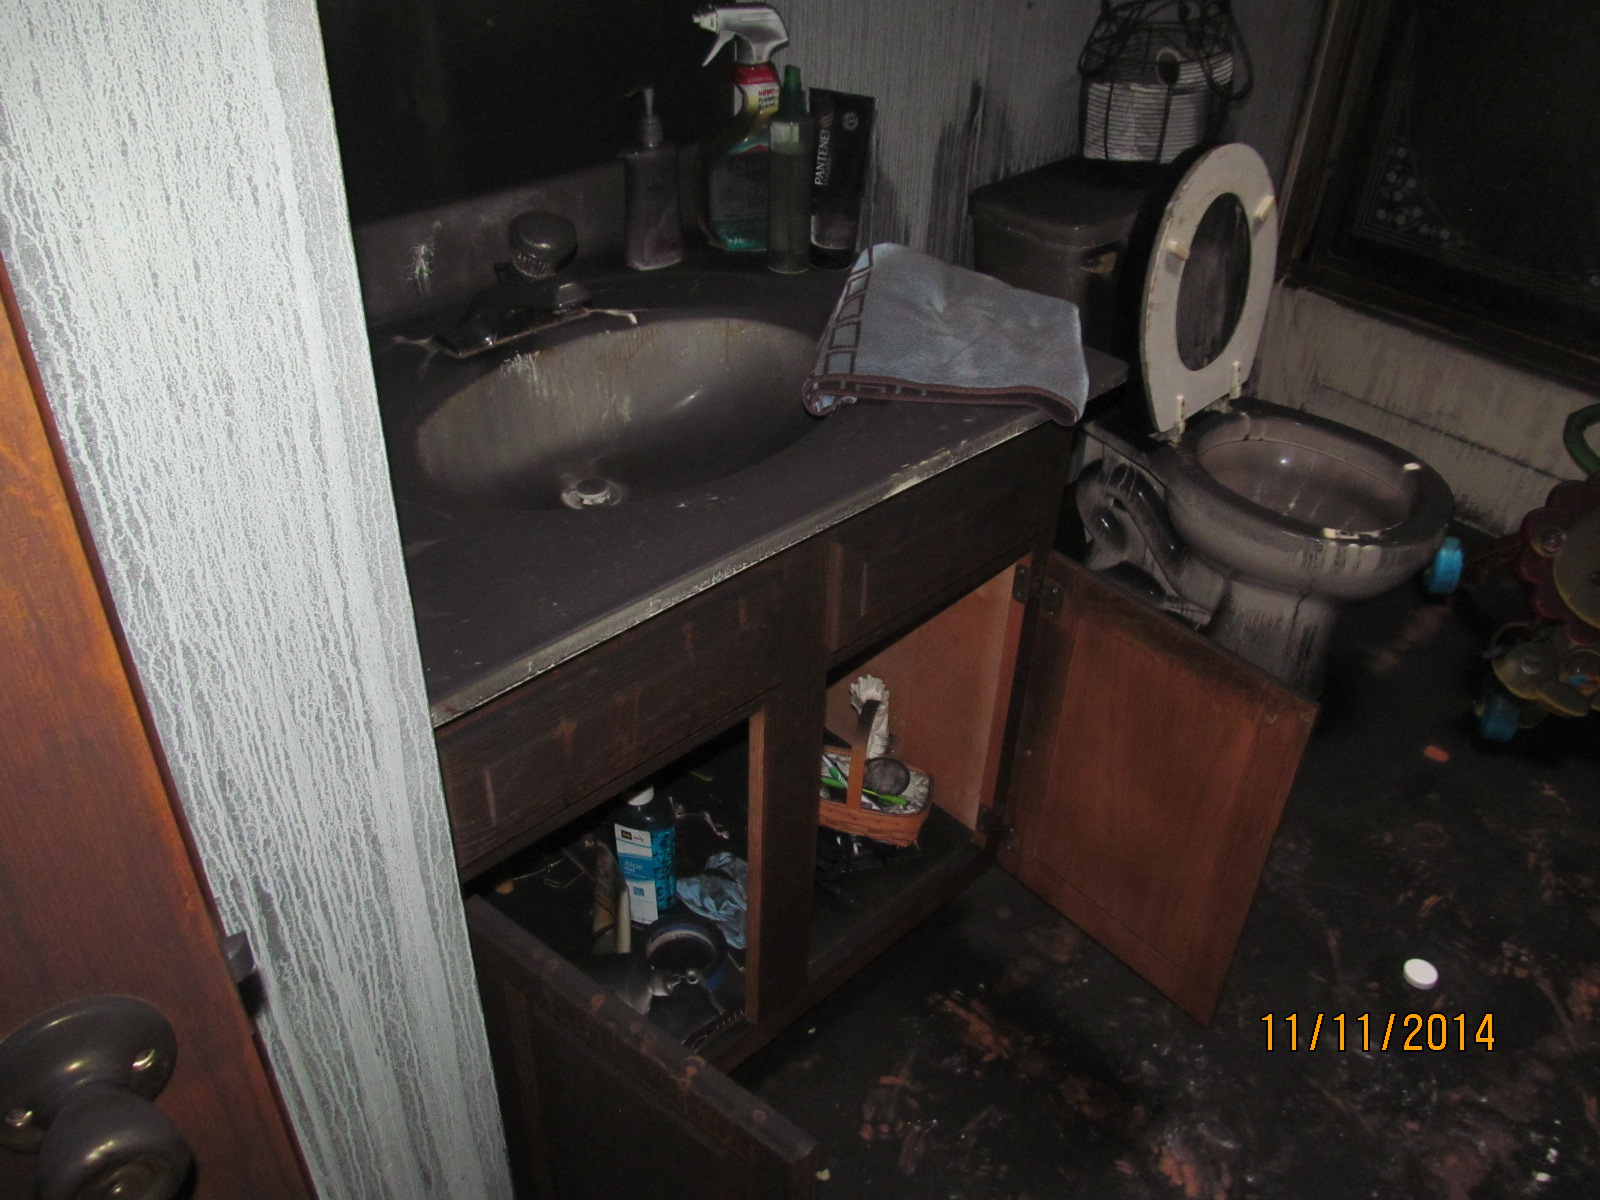 Bathroom Fire and Smoke Damage